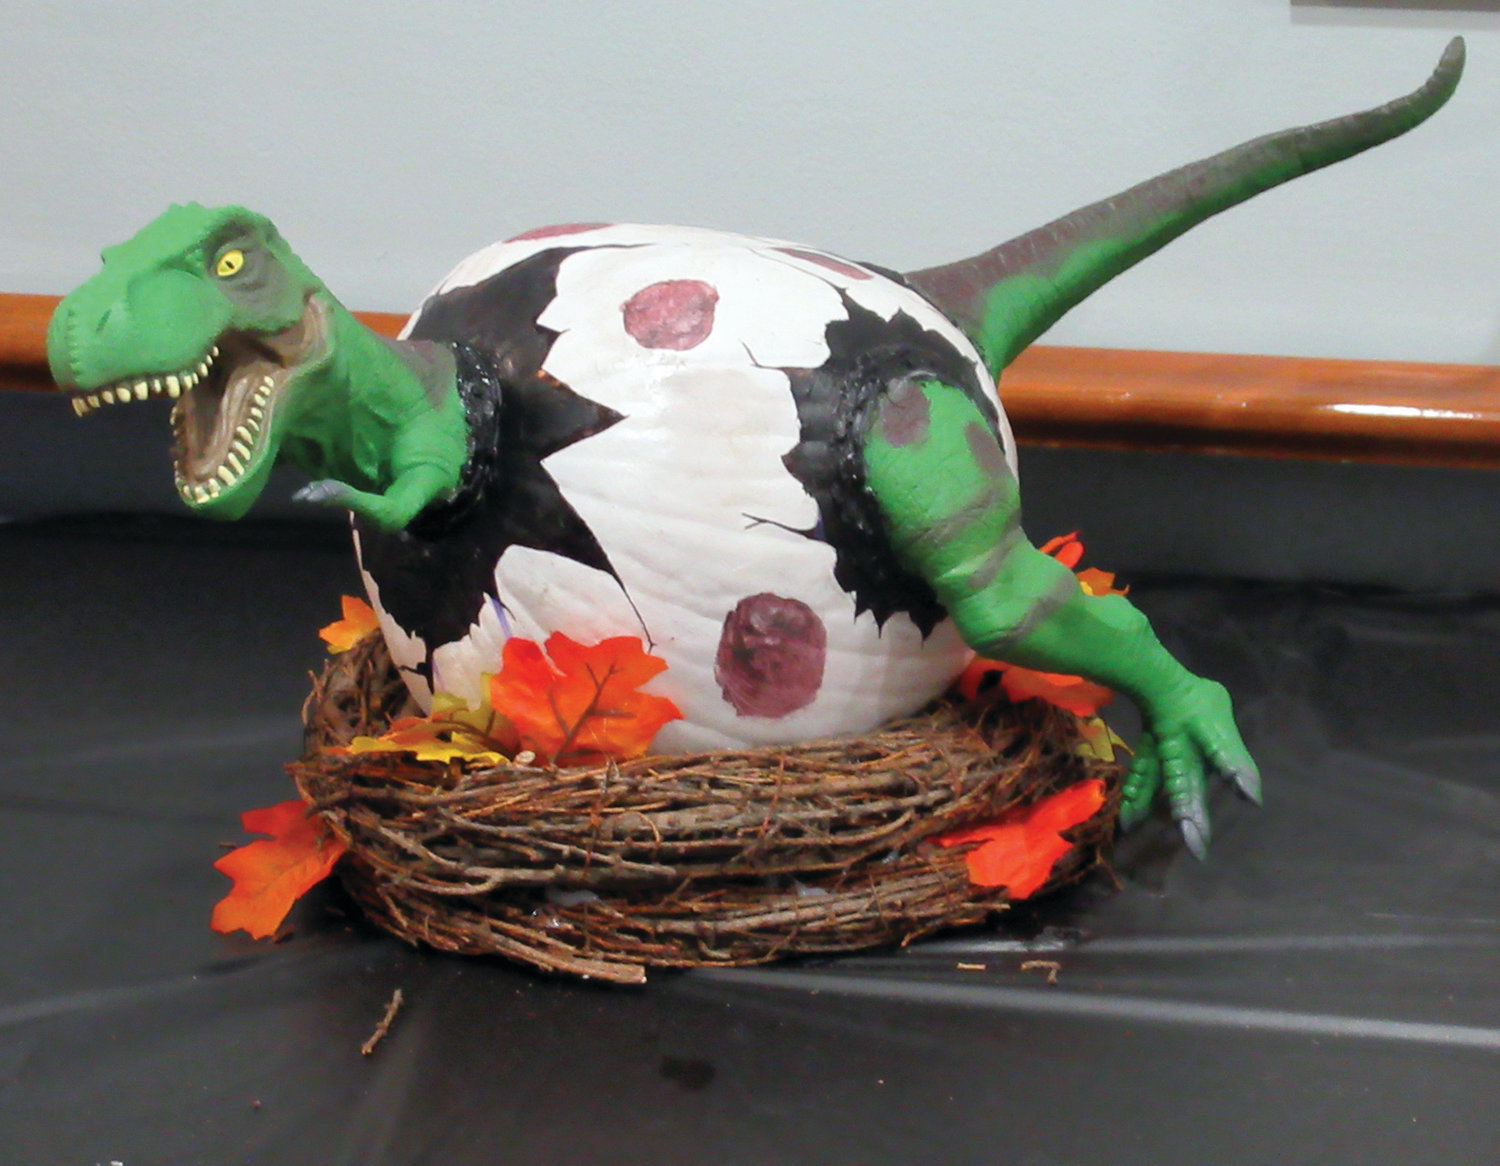 This is the colorful and creative dinosaur pumpkin that took first place in Saturday's Employee Appreciation Halloween Party contest.